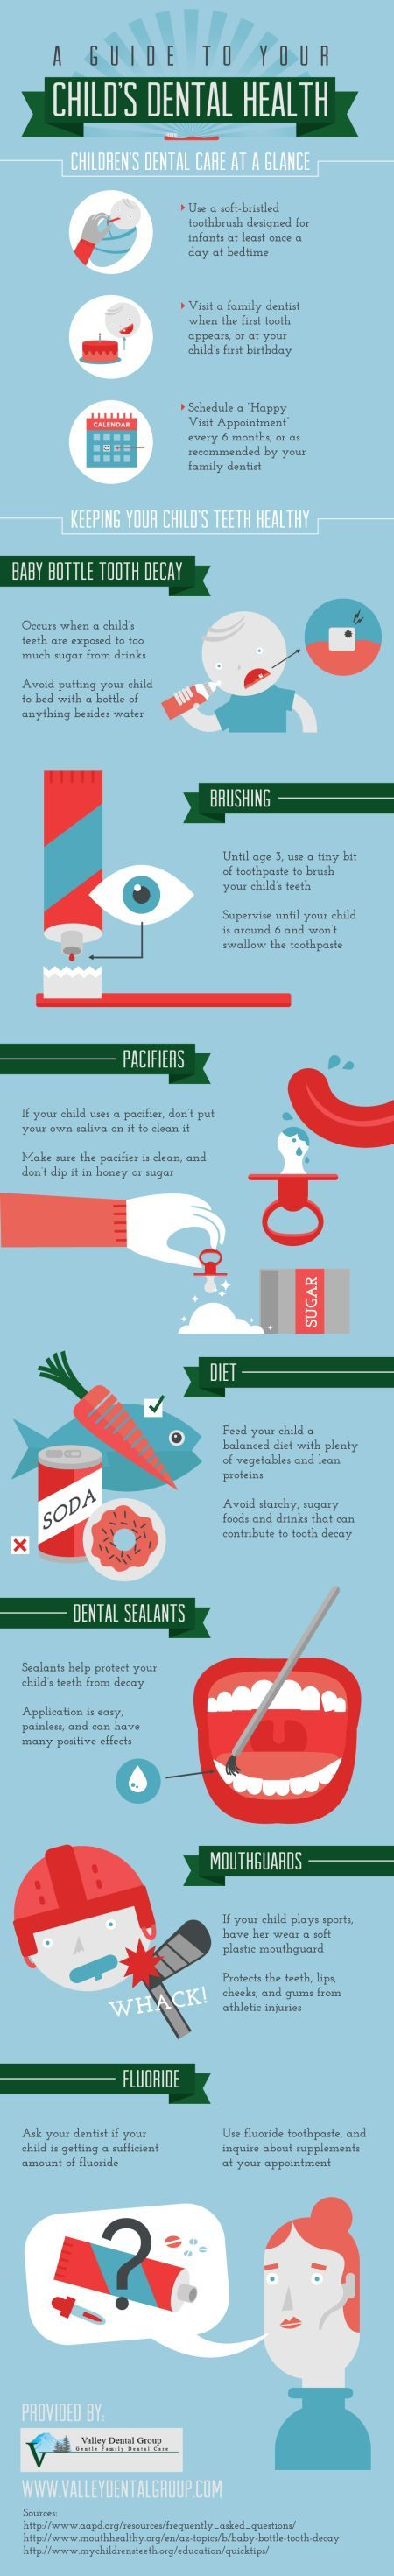 Is your child suffering from baby bottle tooth decay? This occurs when a child's teeth are exposed to too much sugar from drinks. View this infographic from a family dentist in Seattle for more facts about baby bottle tooth decay.